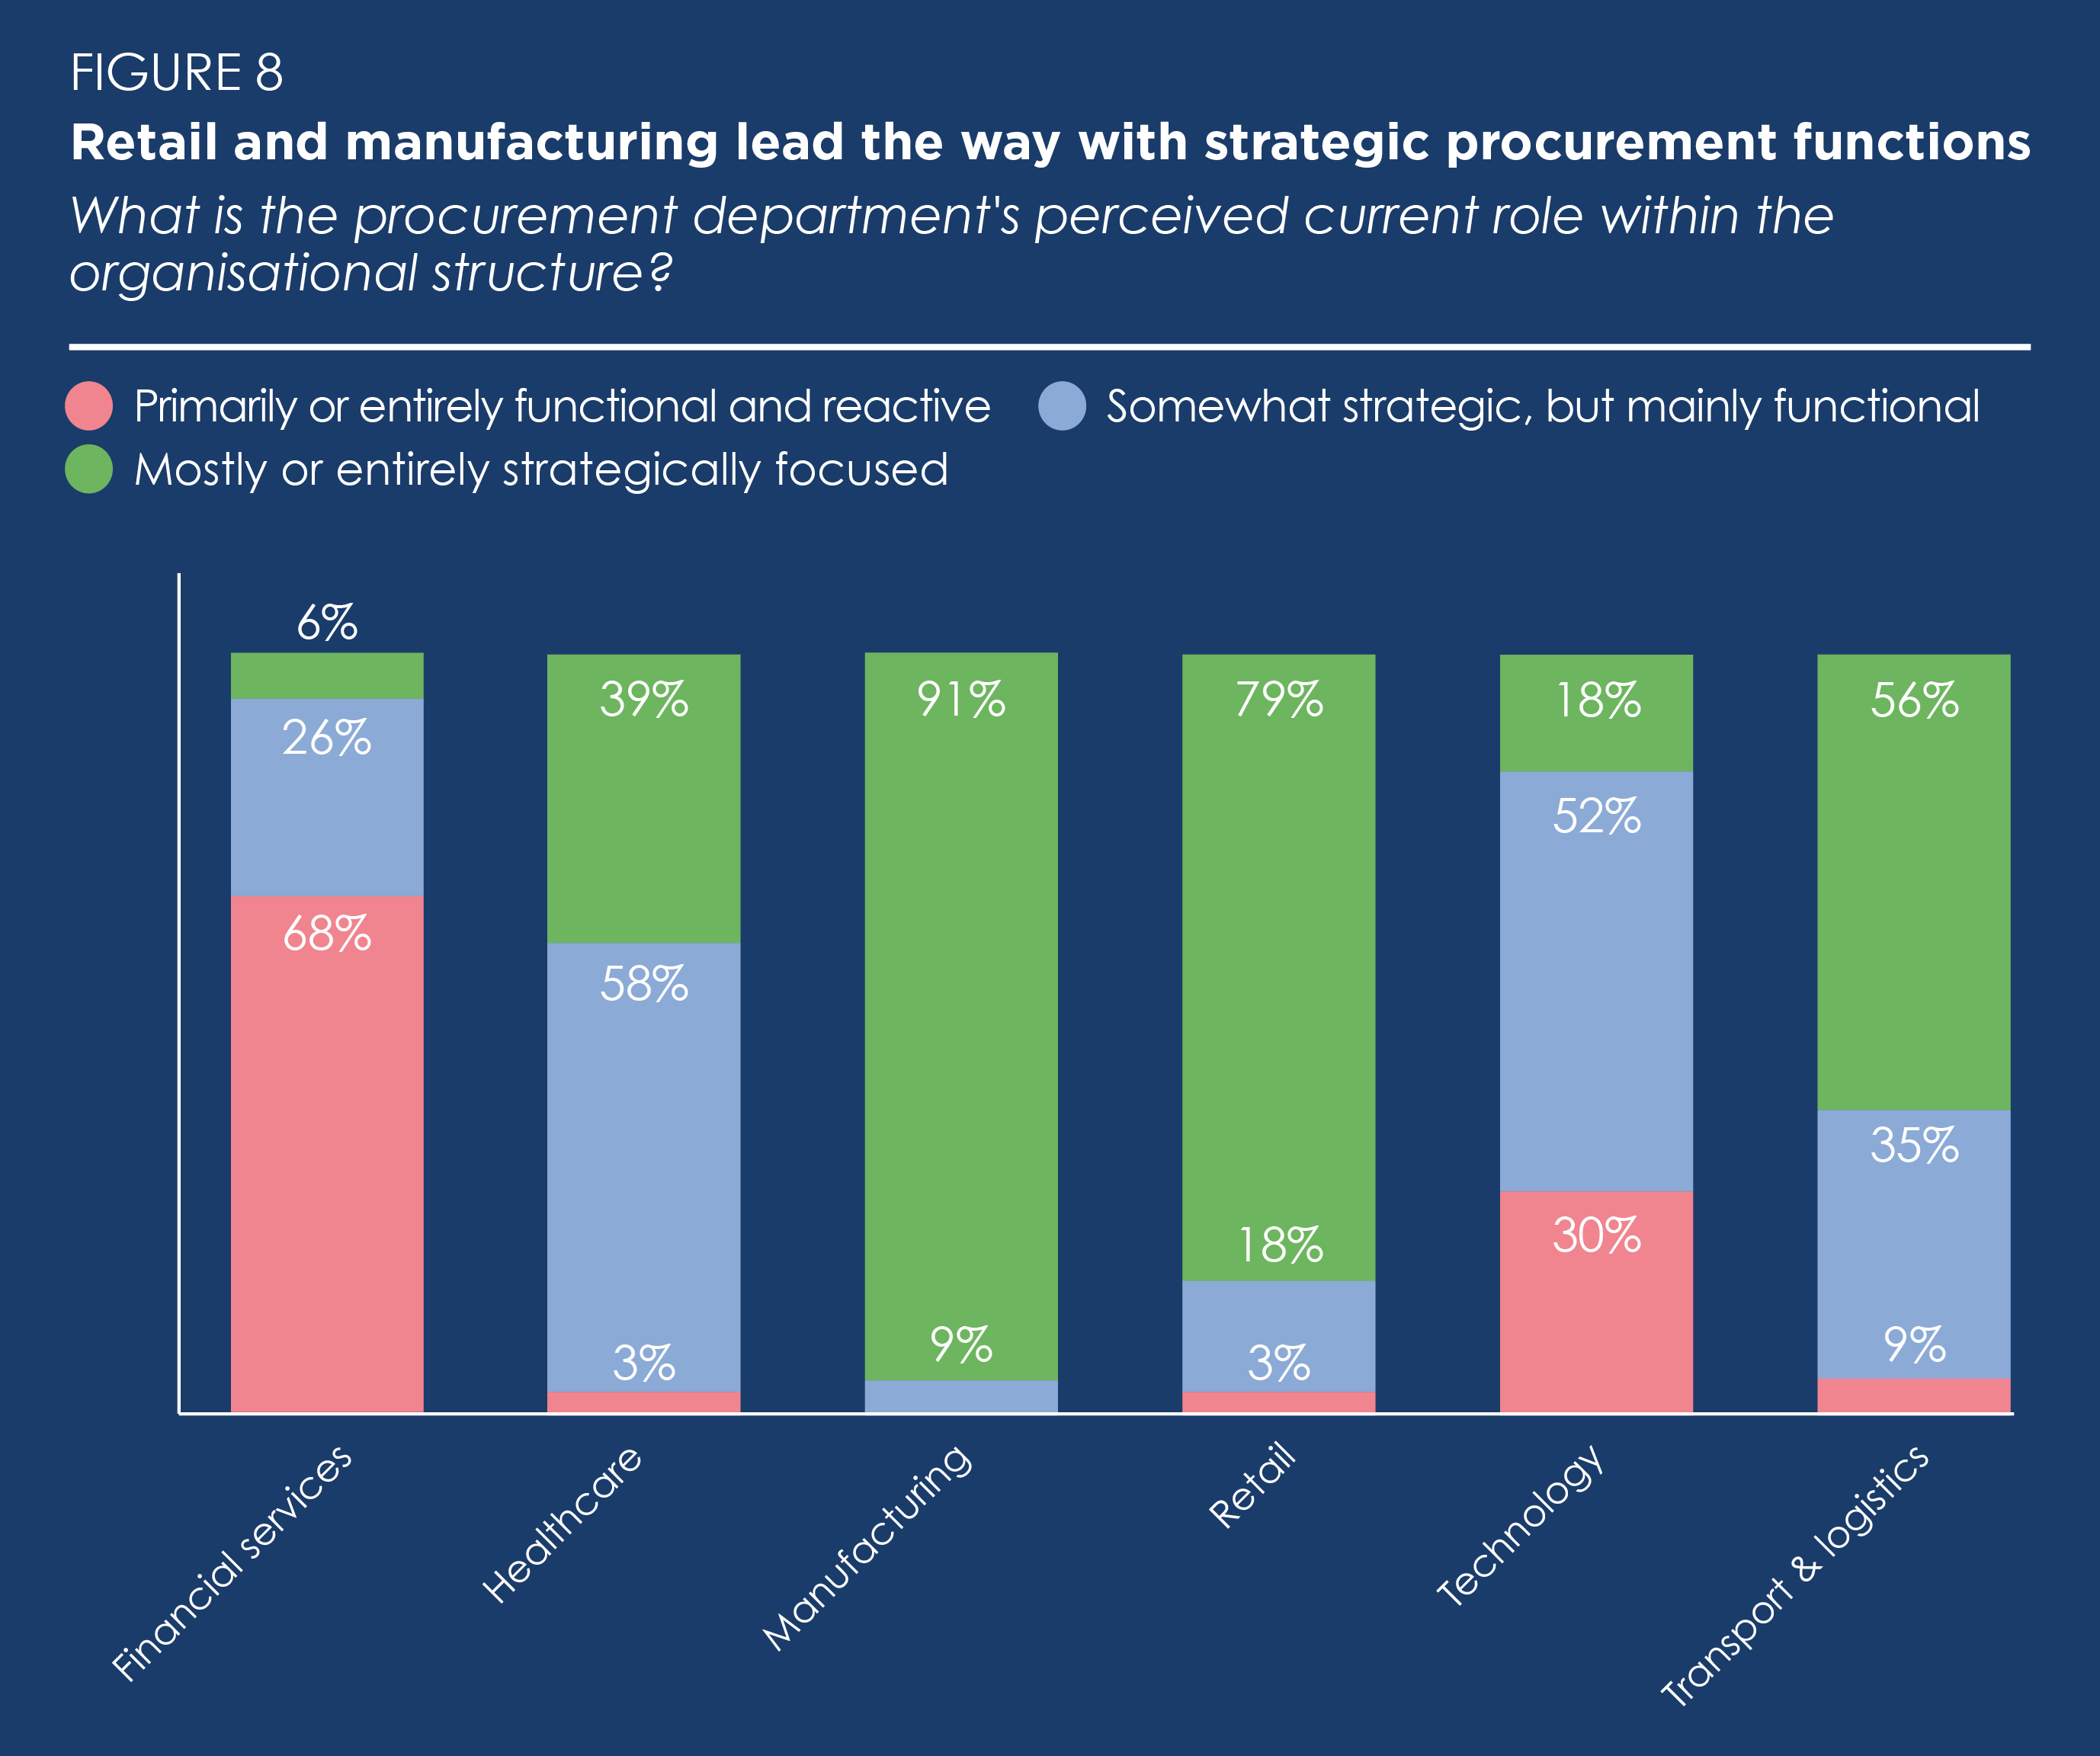 How strategic is your procurement function?